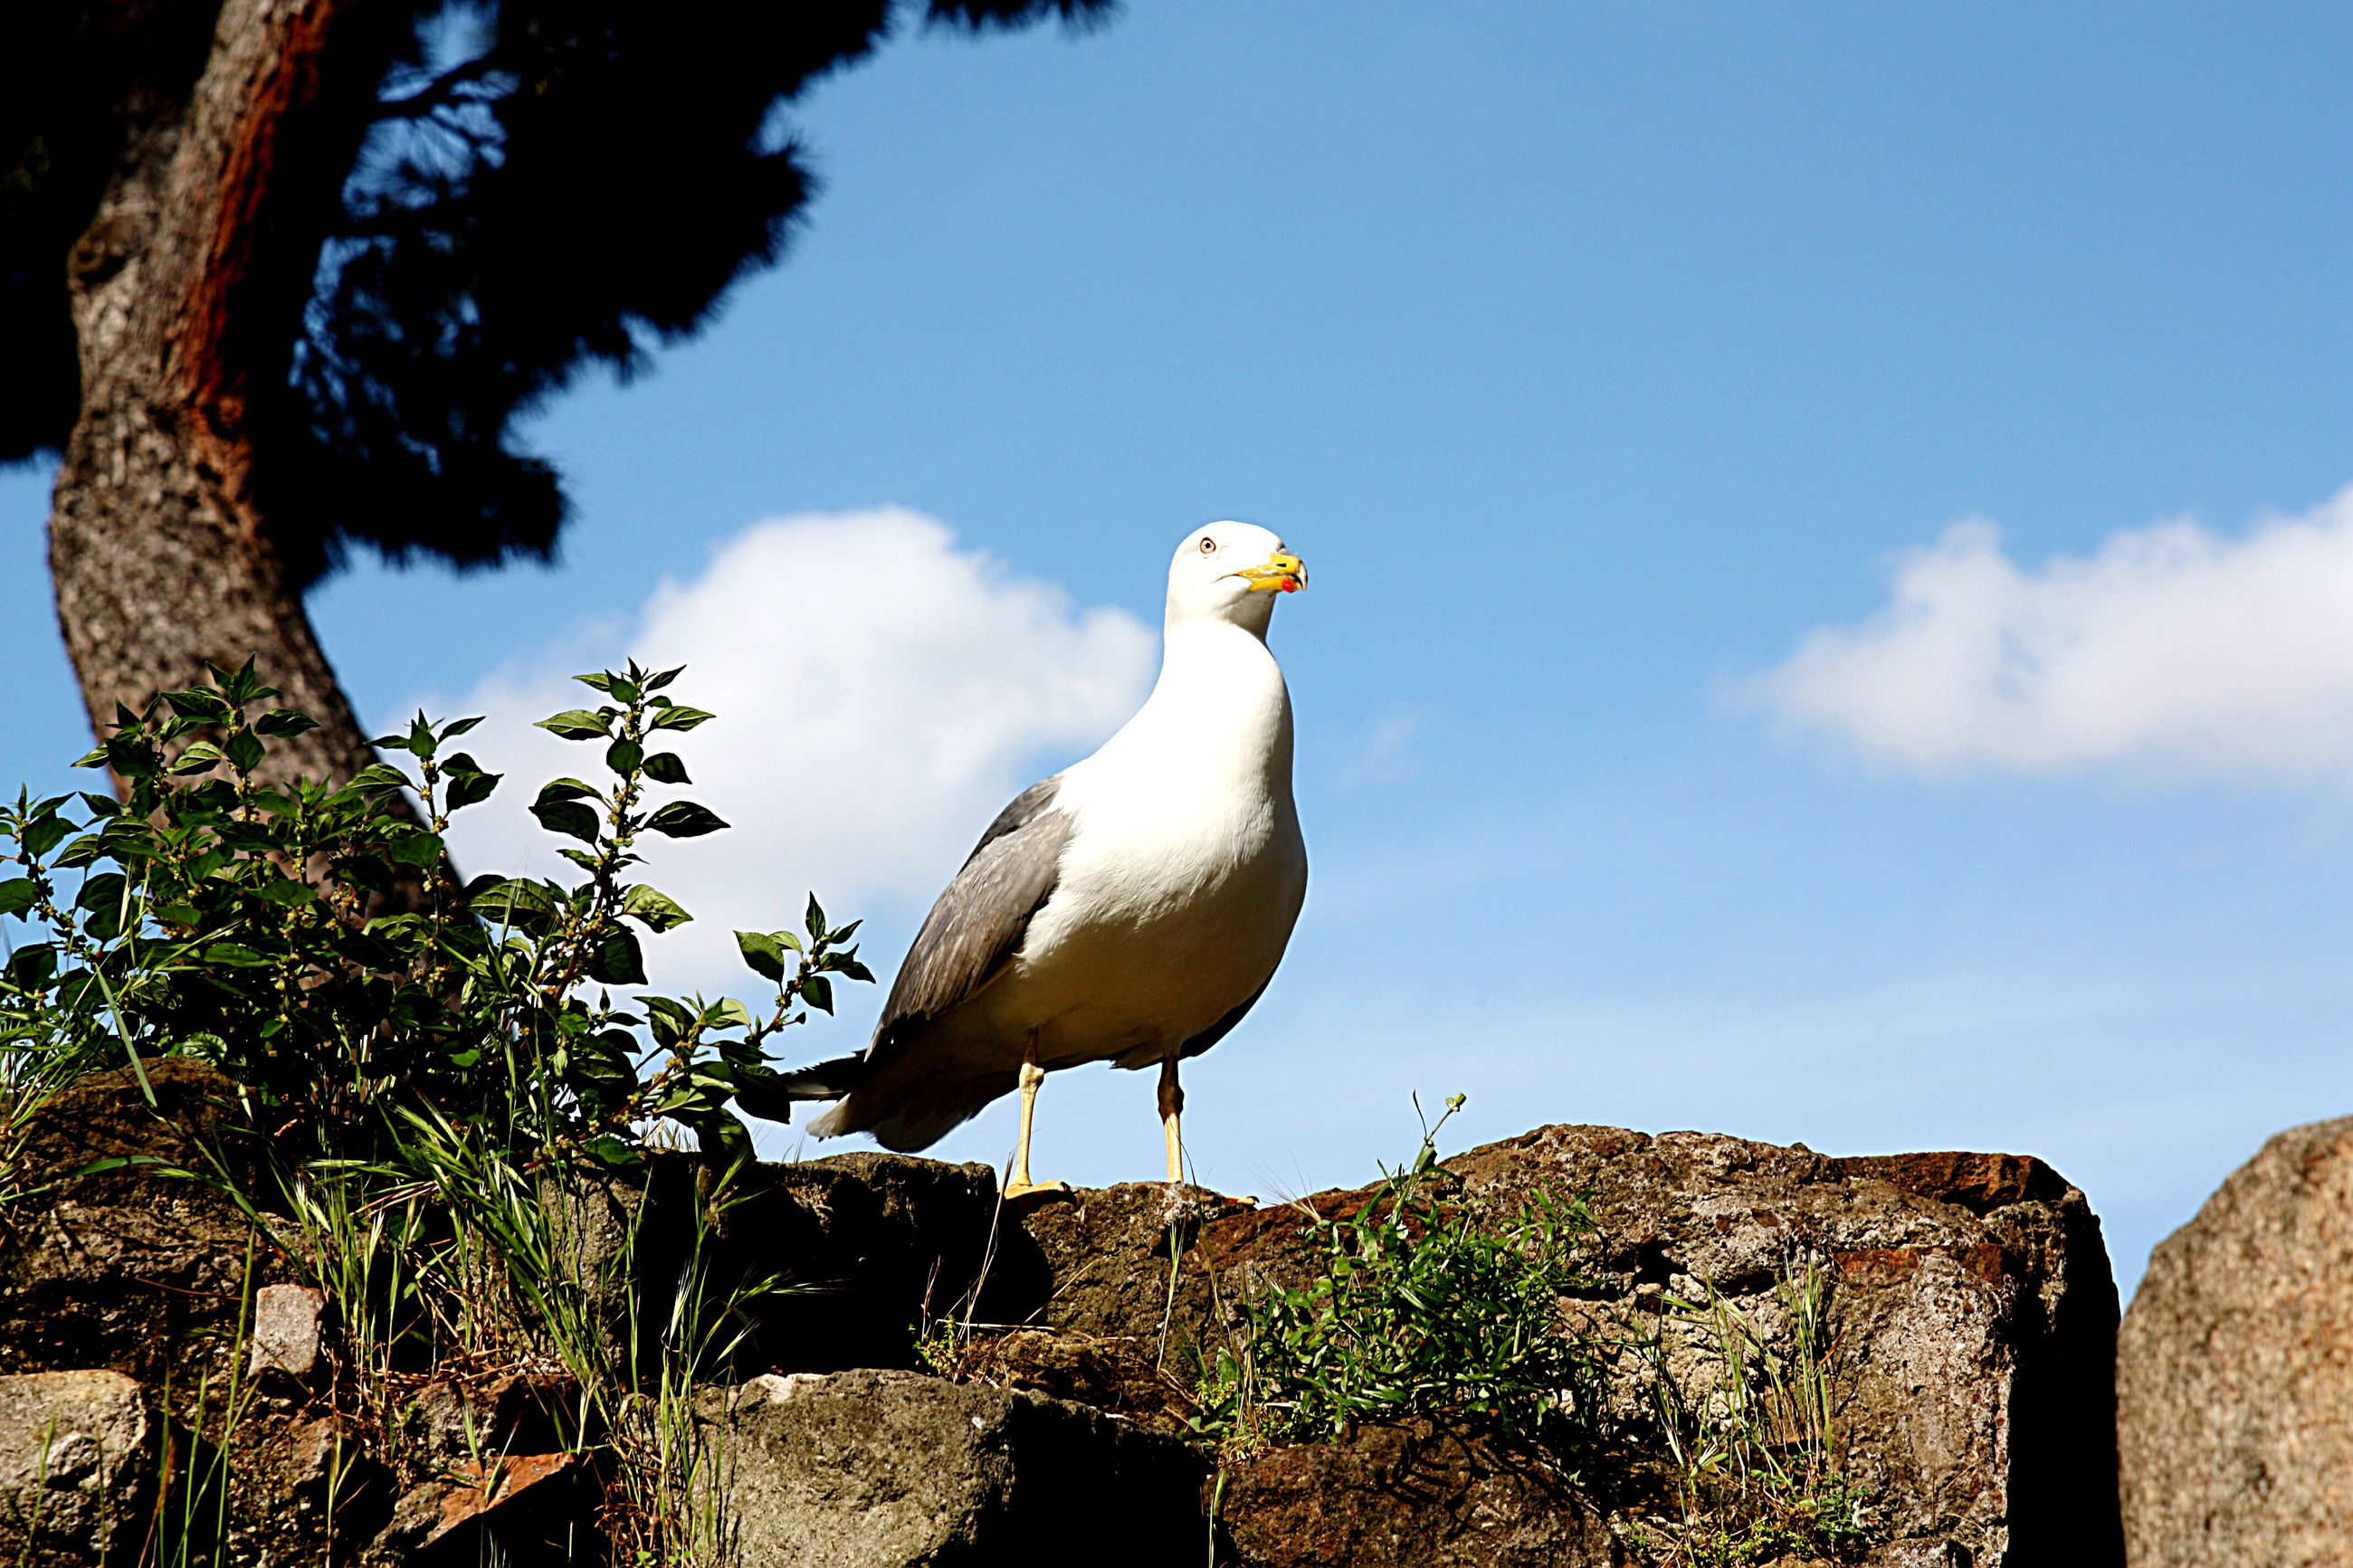 animal themes, bird, animals in the wild, wildlife, one animal, perching, full length, sky, nature, seagull, side view, beak, outdoors, tree, day, beauty in nature, blue, focus on foreground, no people, white color